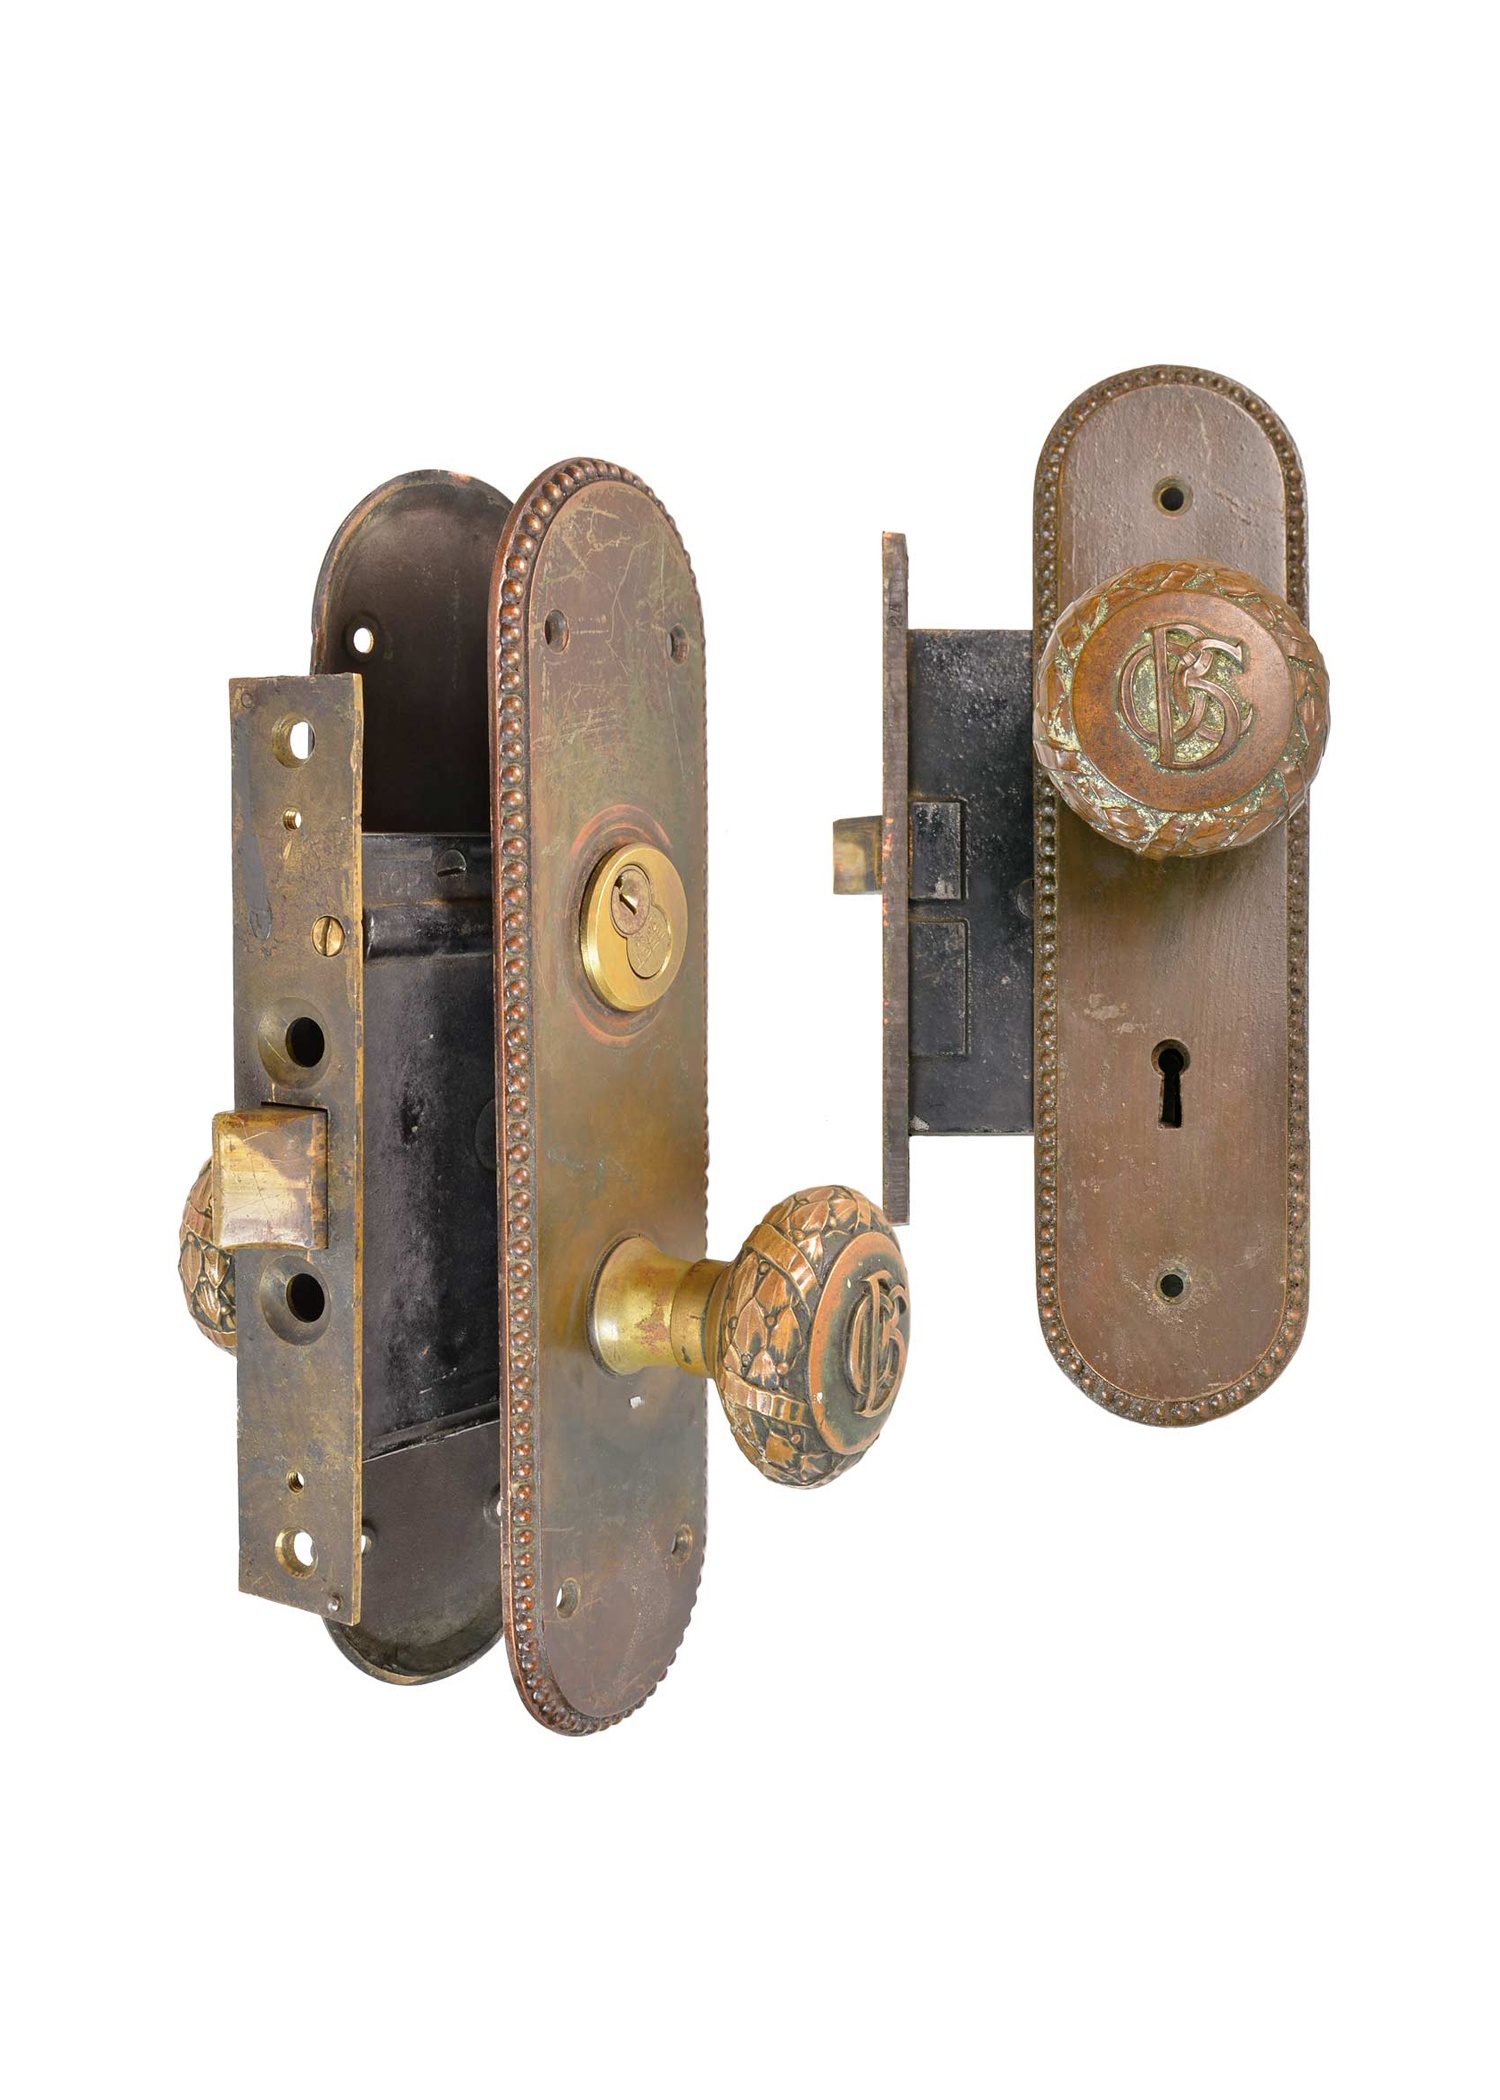 OLD COLONY BUILDING HARDWARE SETS AA# 46220   5 varying sets available from $275.00 each set